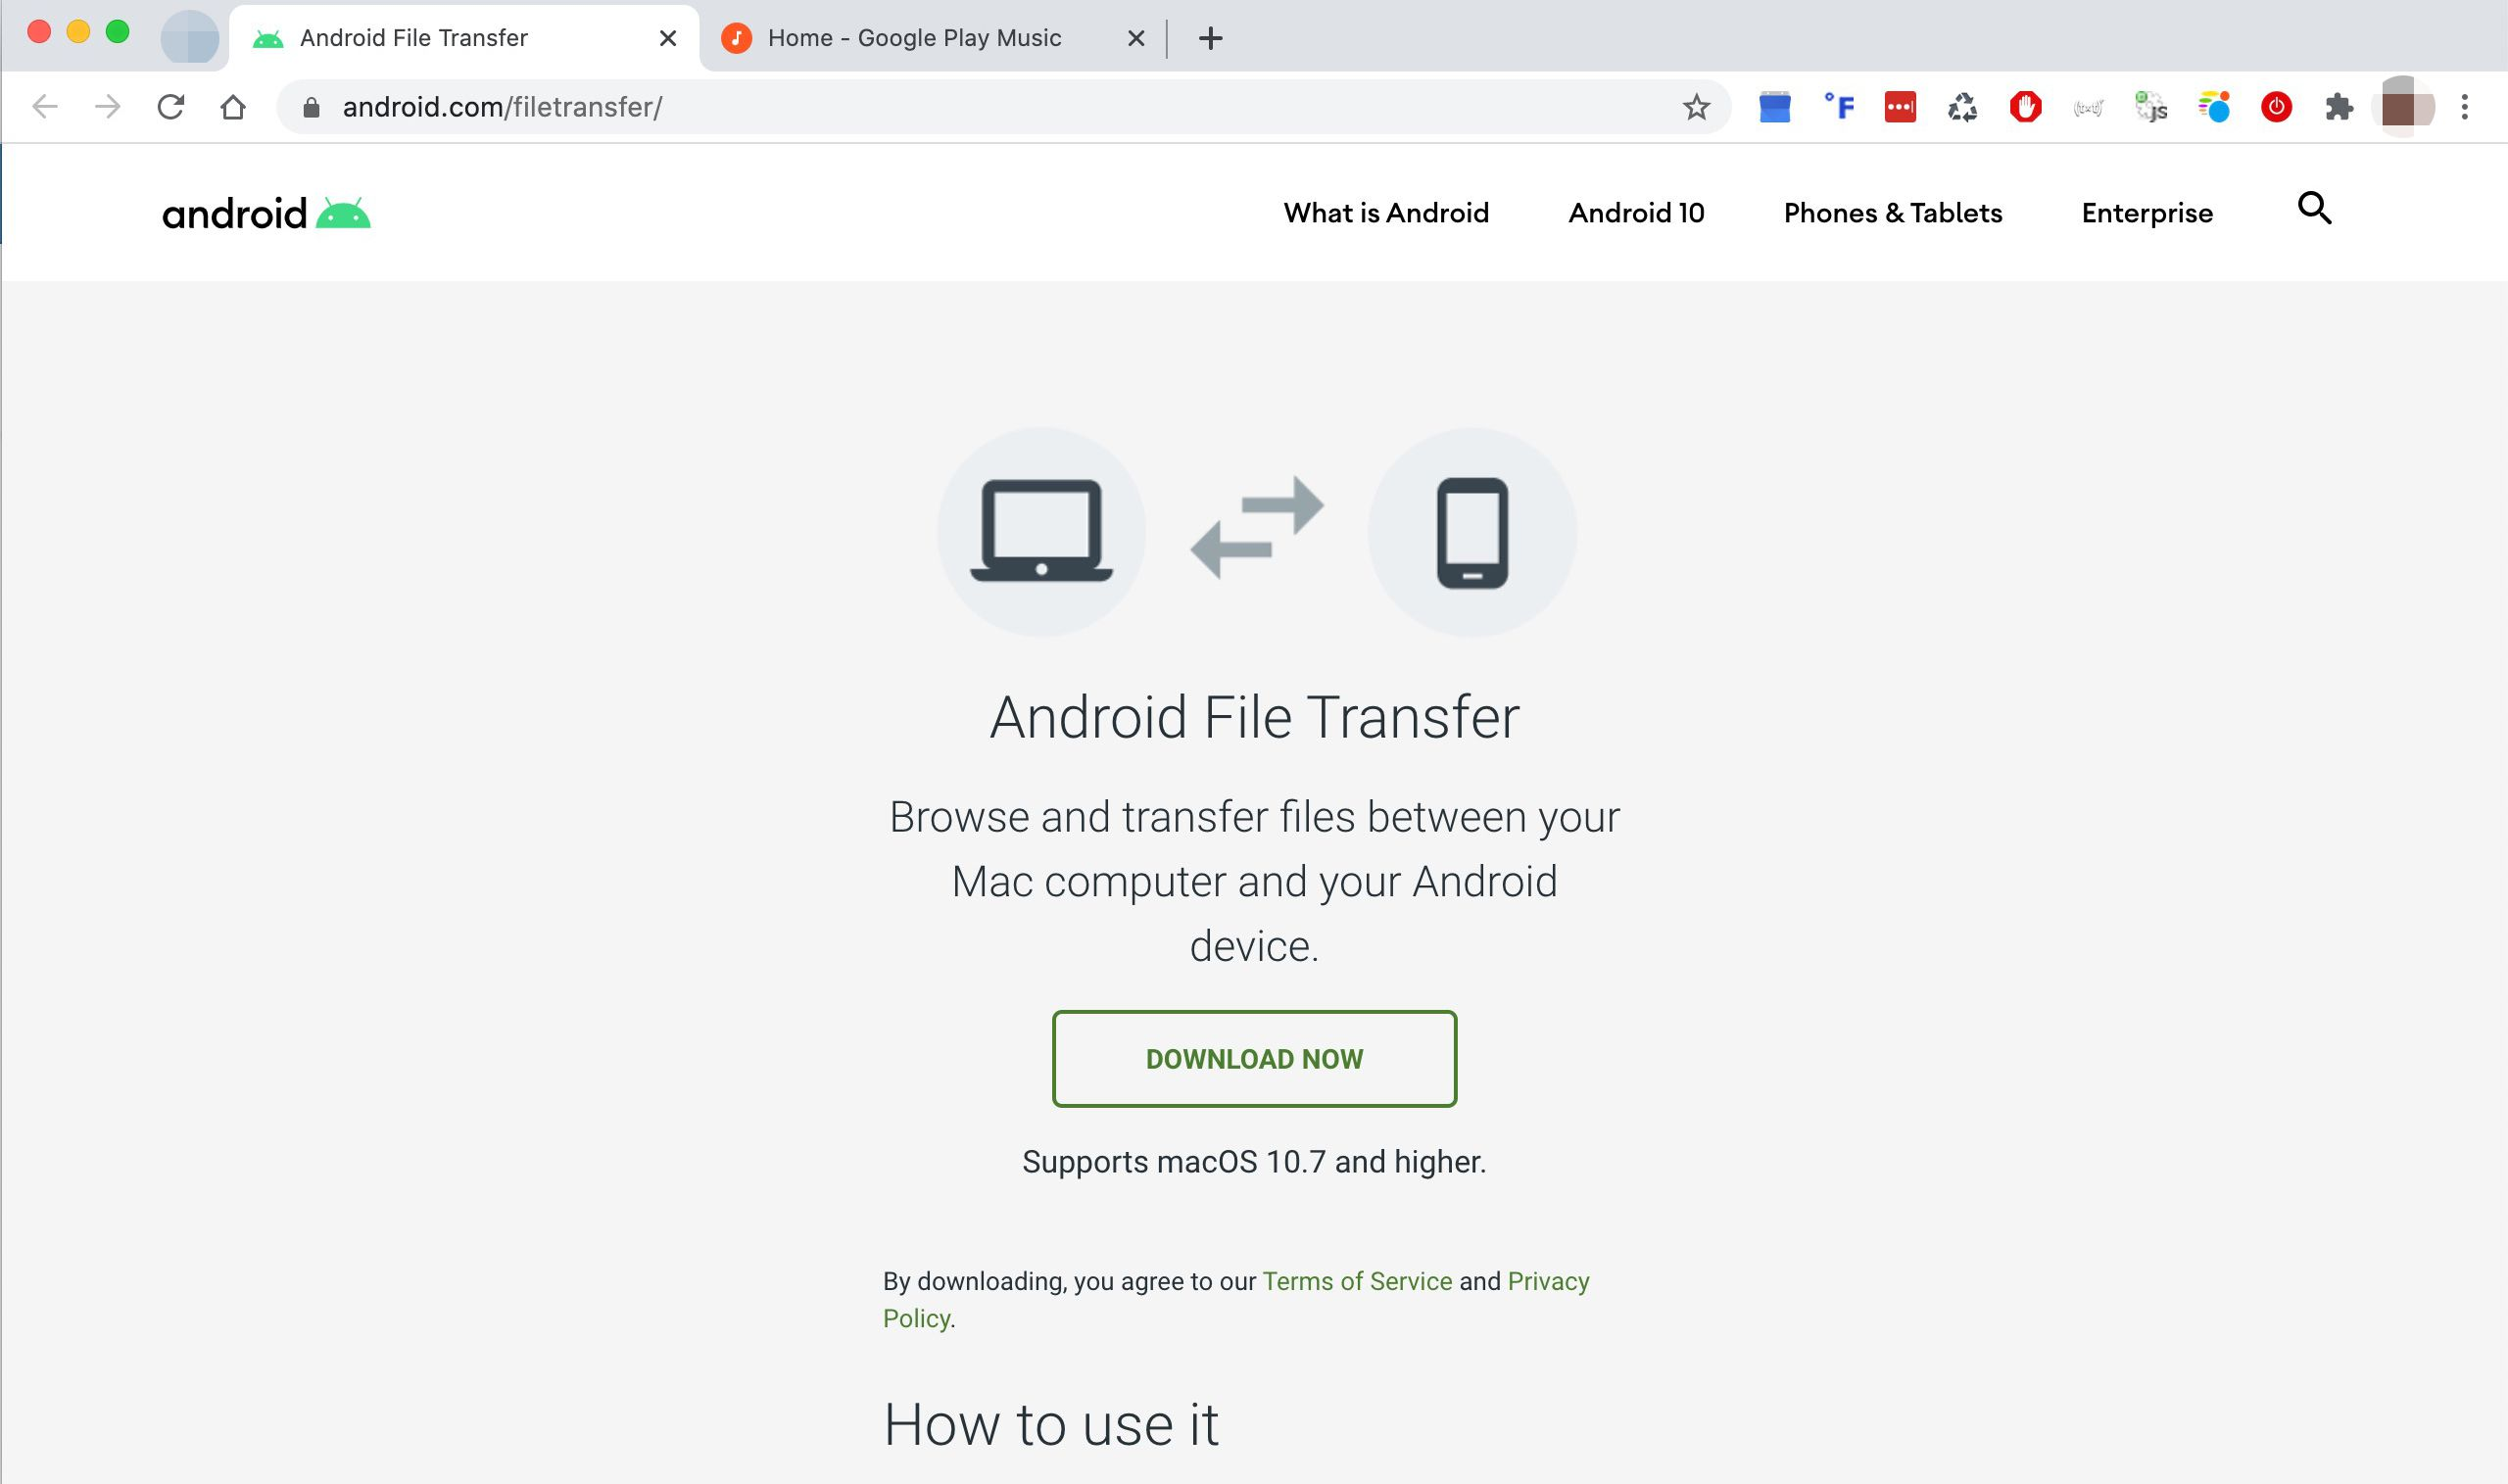 Android File Transfer website